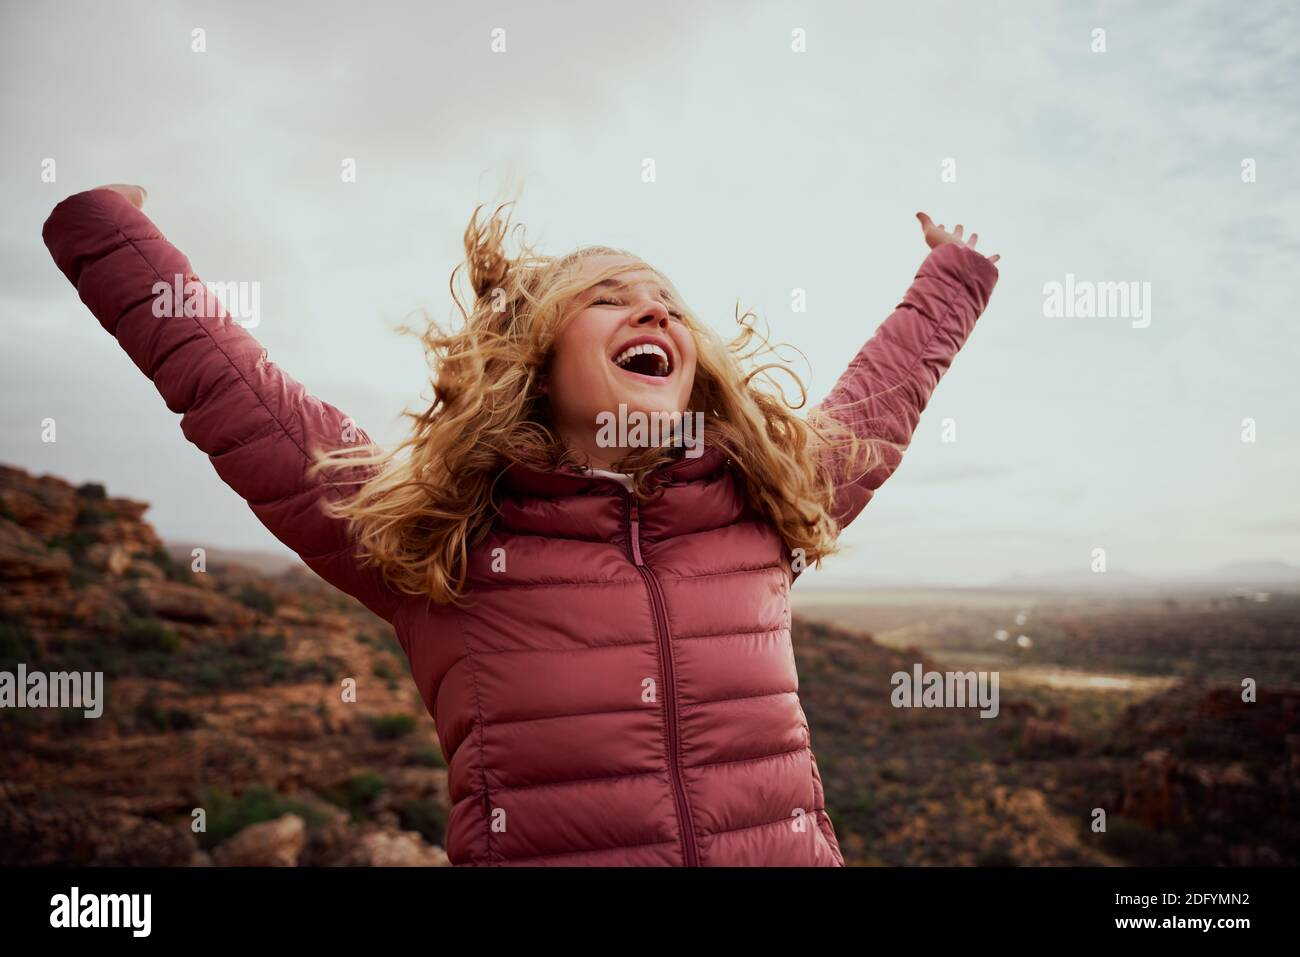 Cheerful young woman with hands raised and outstretched mountaineer with hair flying in wind enjoying fresh breeze - happiness and travel - achieving Stock Photo